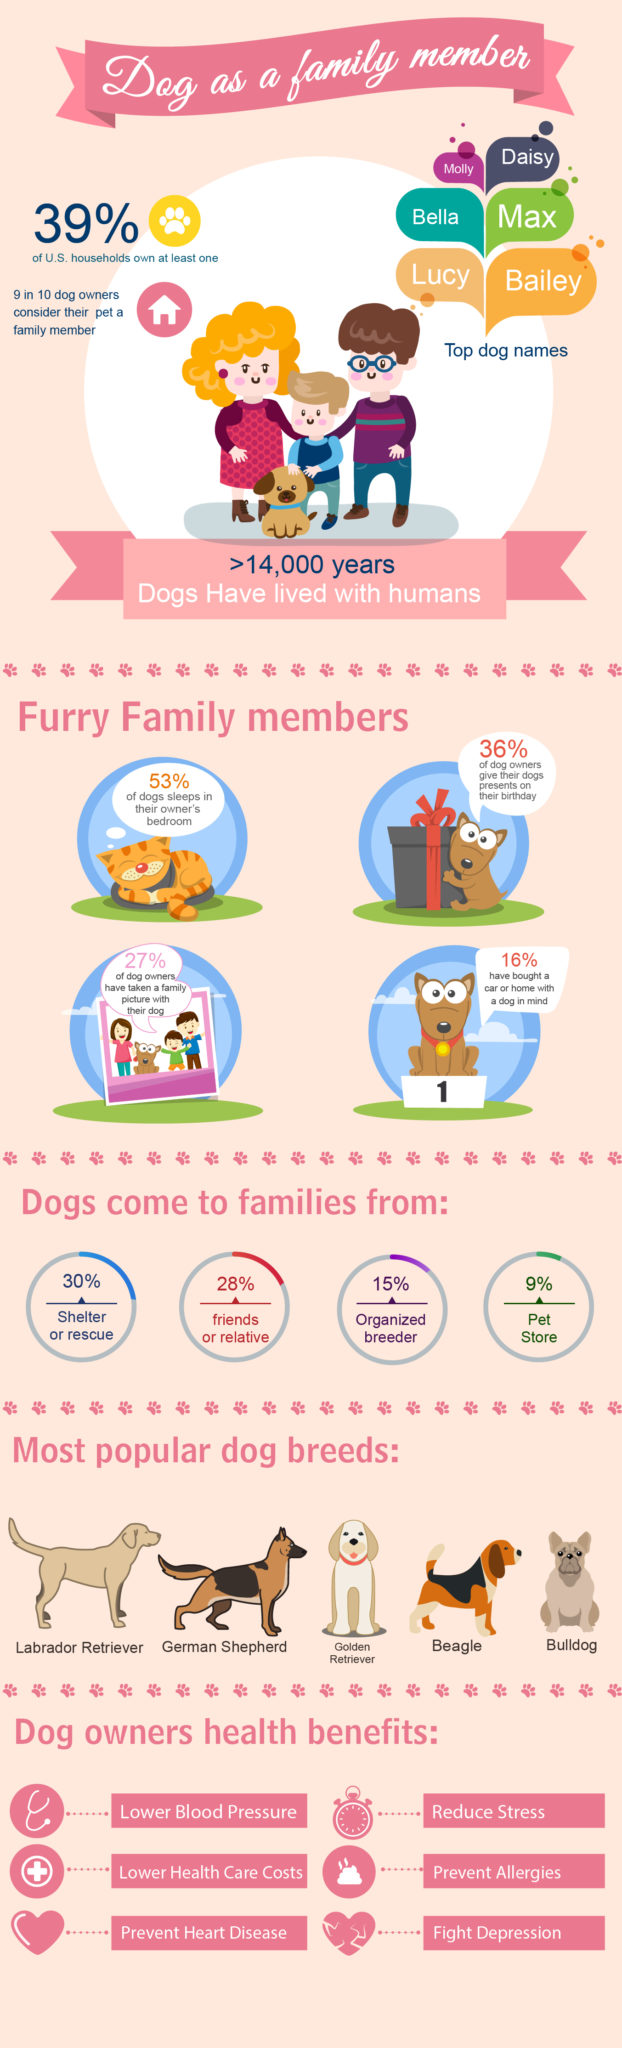 dog as a family member